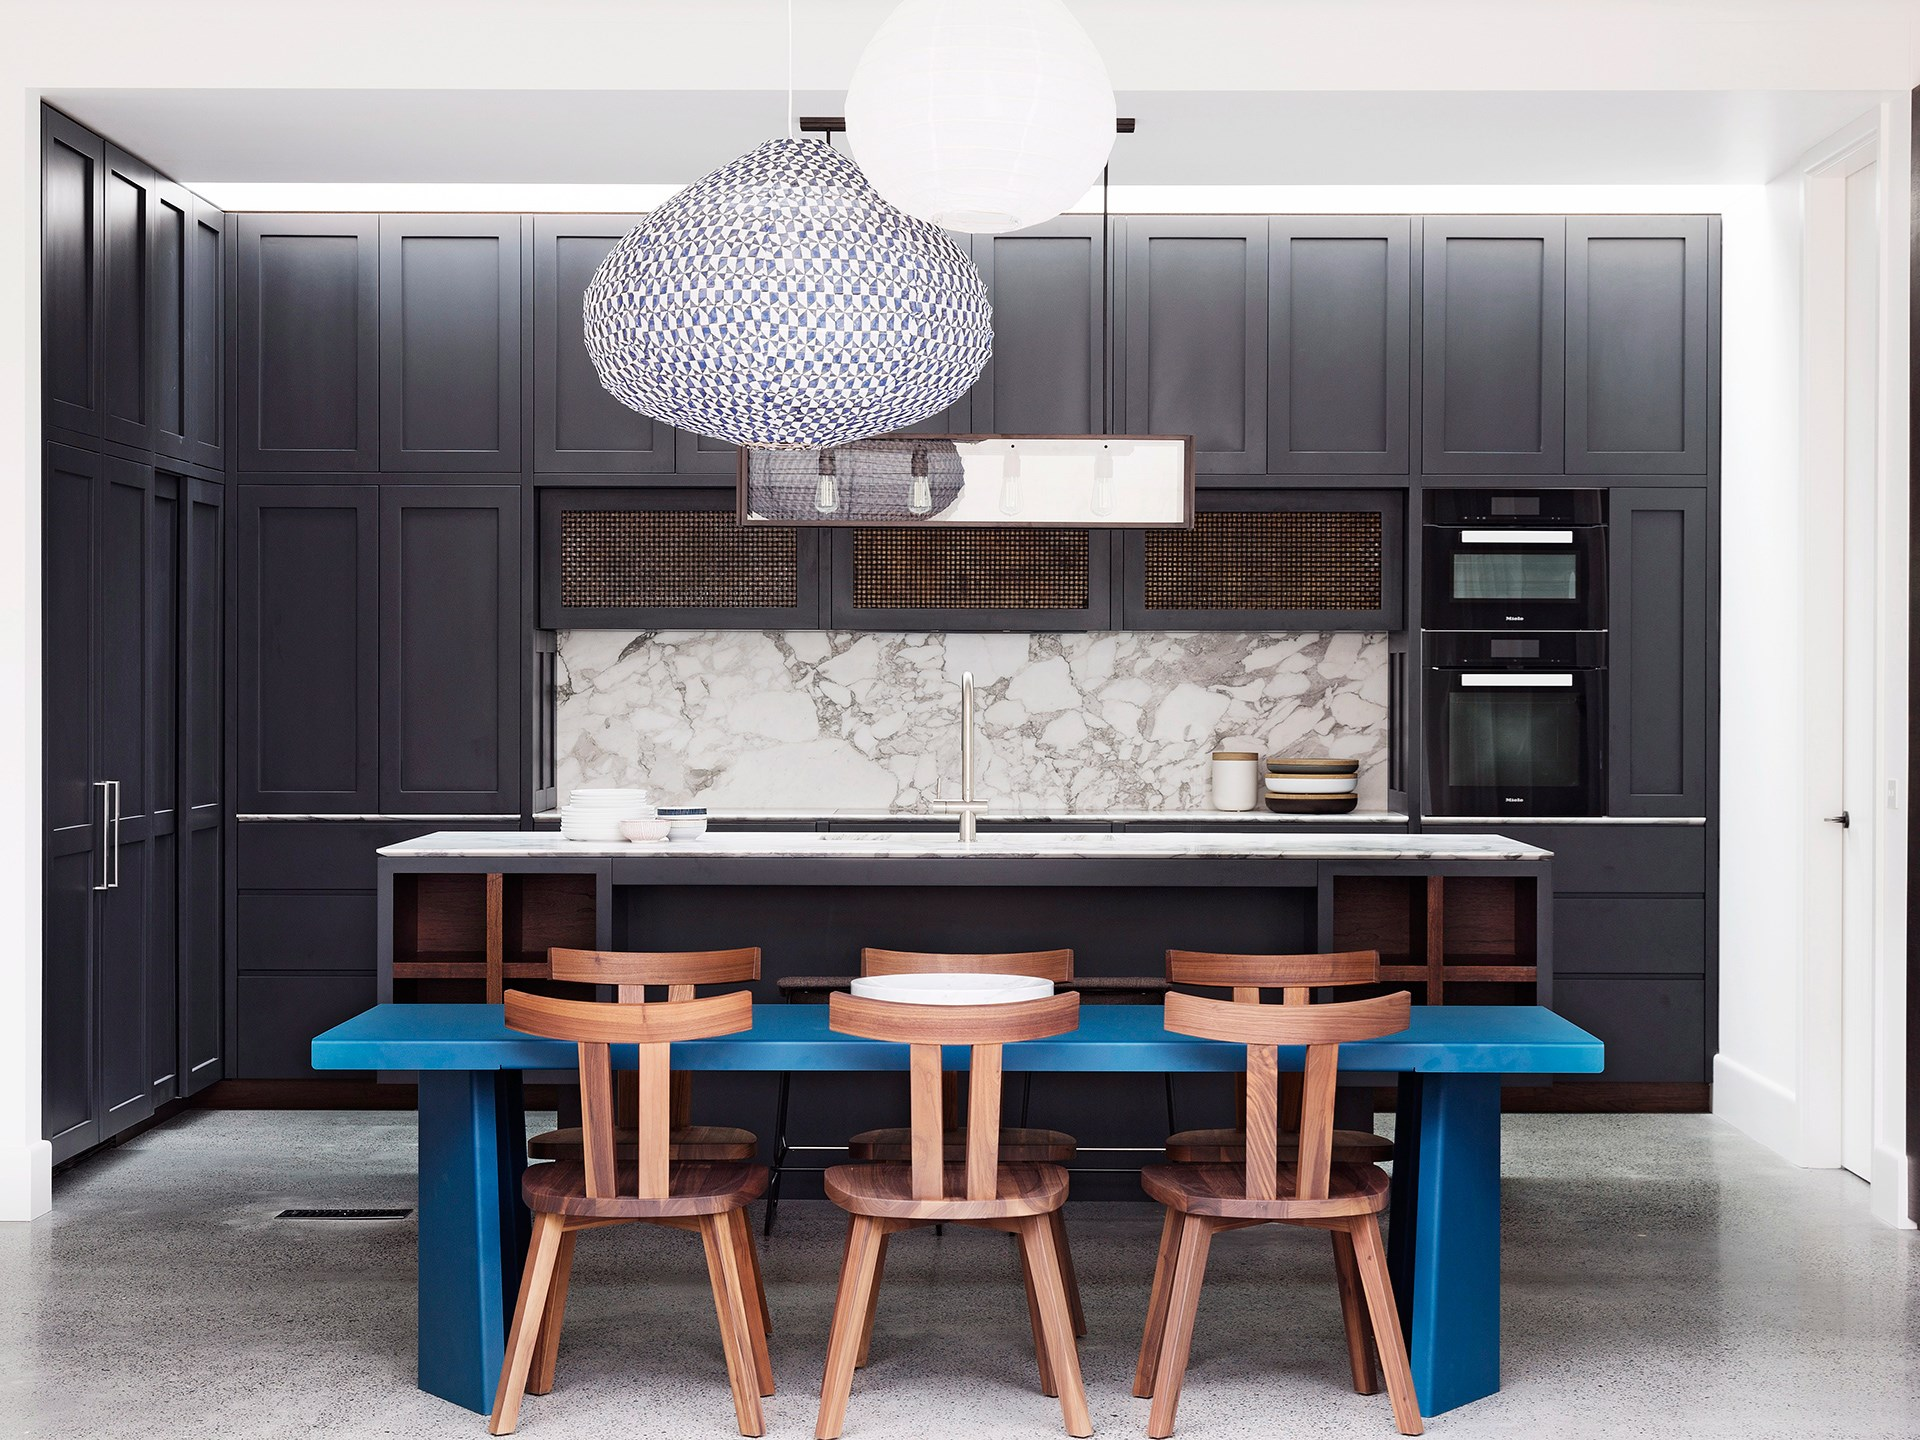 An integrated oven is generally built into your kitchen cabinets at eye level, which is a convenient height for getting hot dishes in and out. *Photo: Justin Alexander / bauersyndication.com.au*